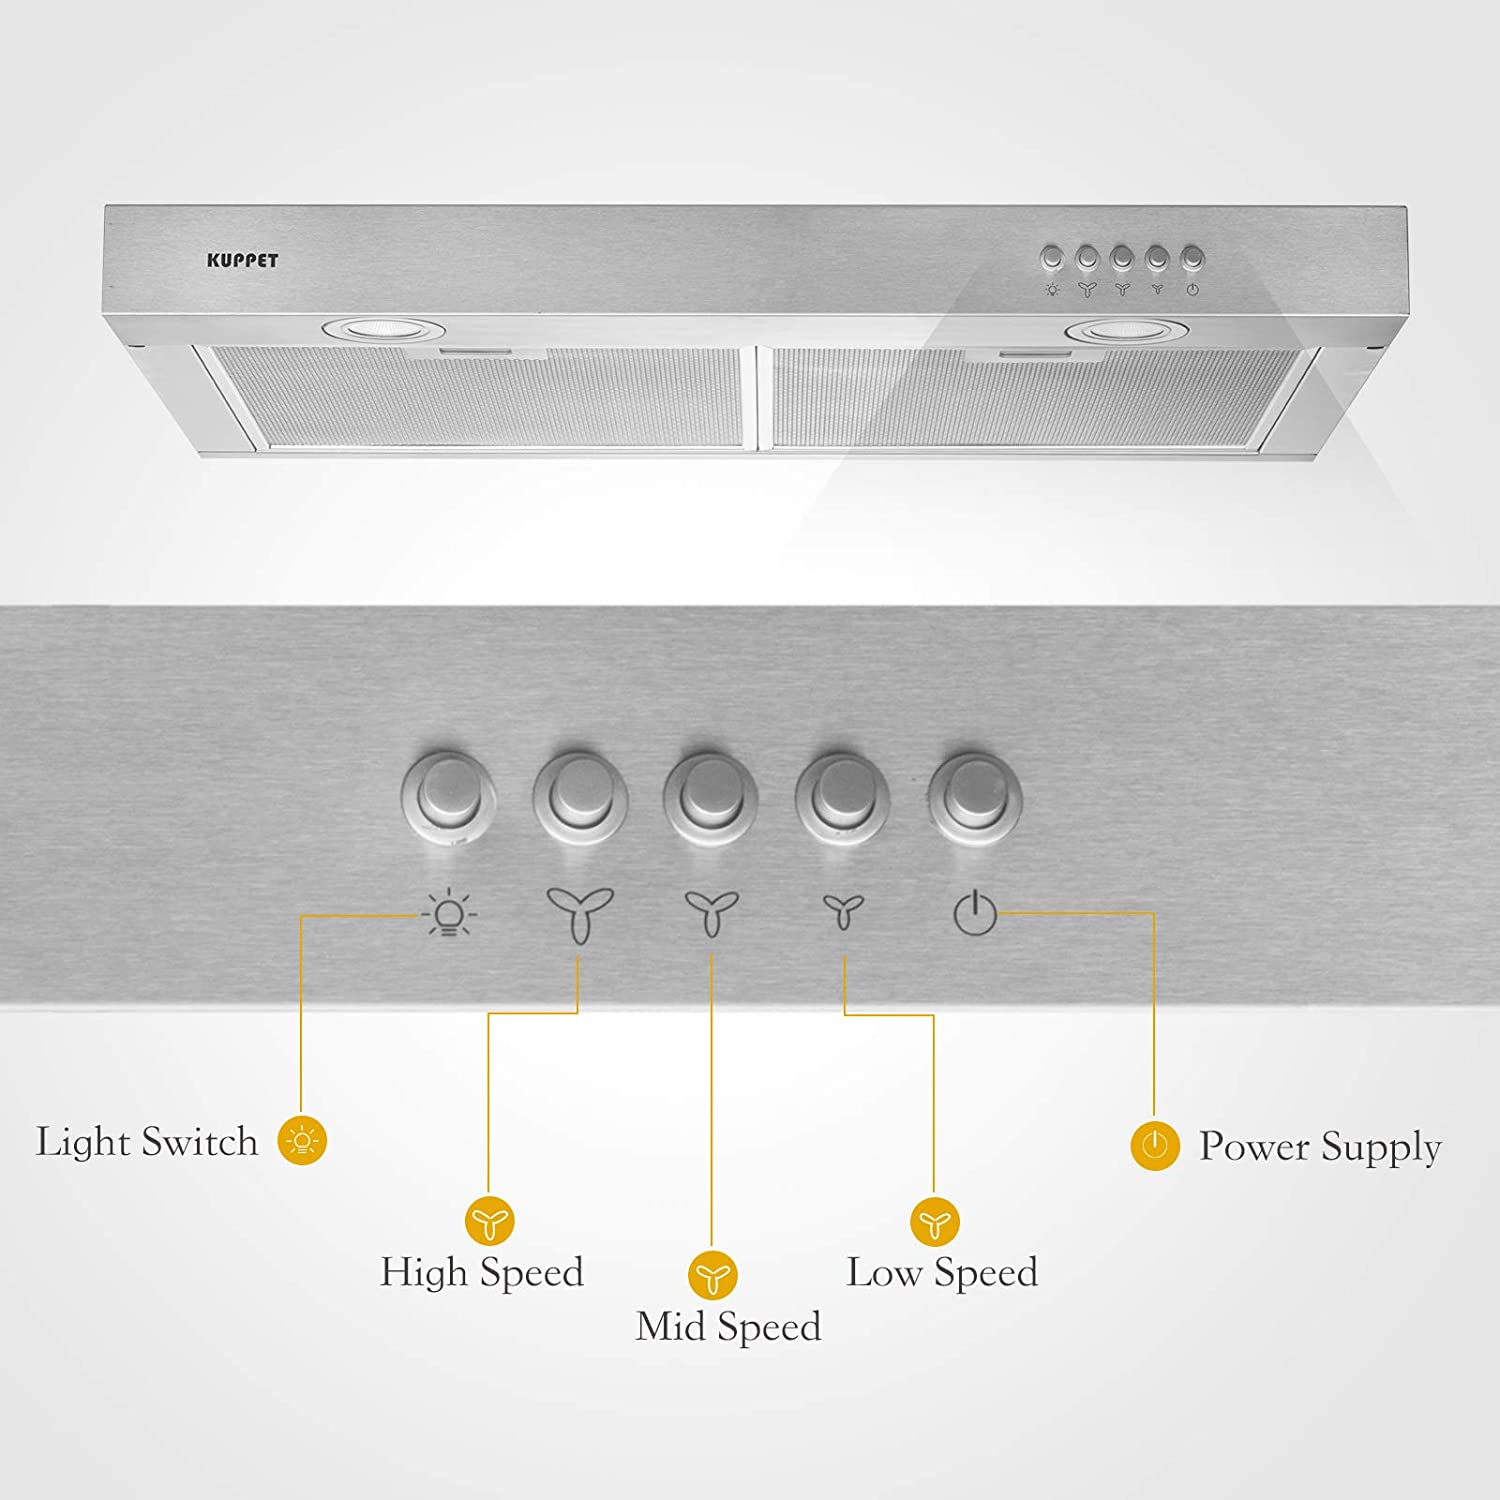 Push Button 3 Speed Controls Tempered Glass with High-End LED Lights KUPPET CE53 Kitchen Bath Collection 30 Under Cabinet Range Hood Aluminum Mesh Filter Silver Stainless Steel